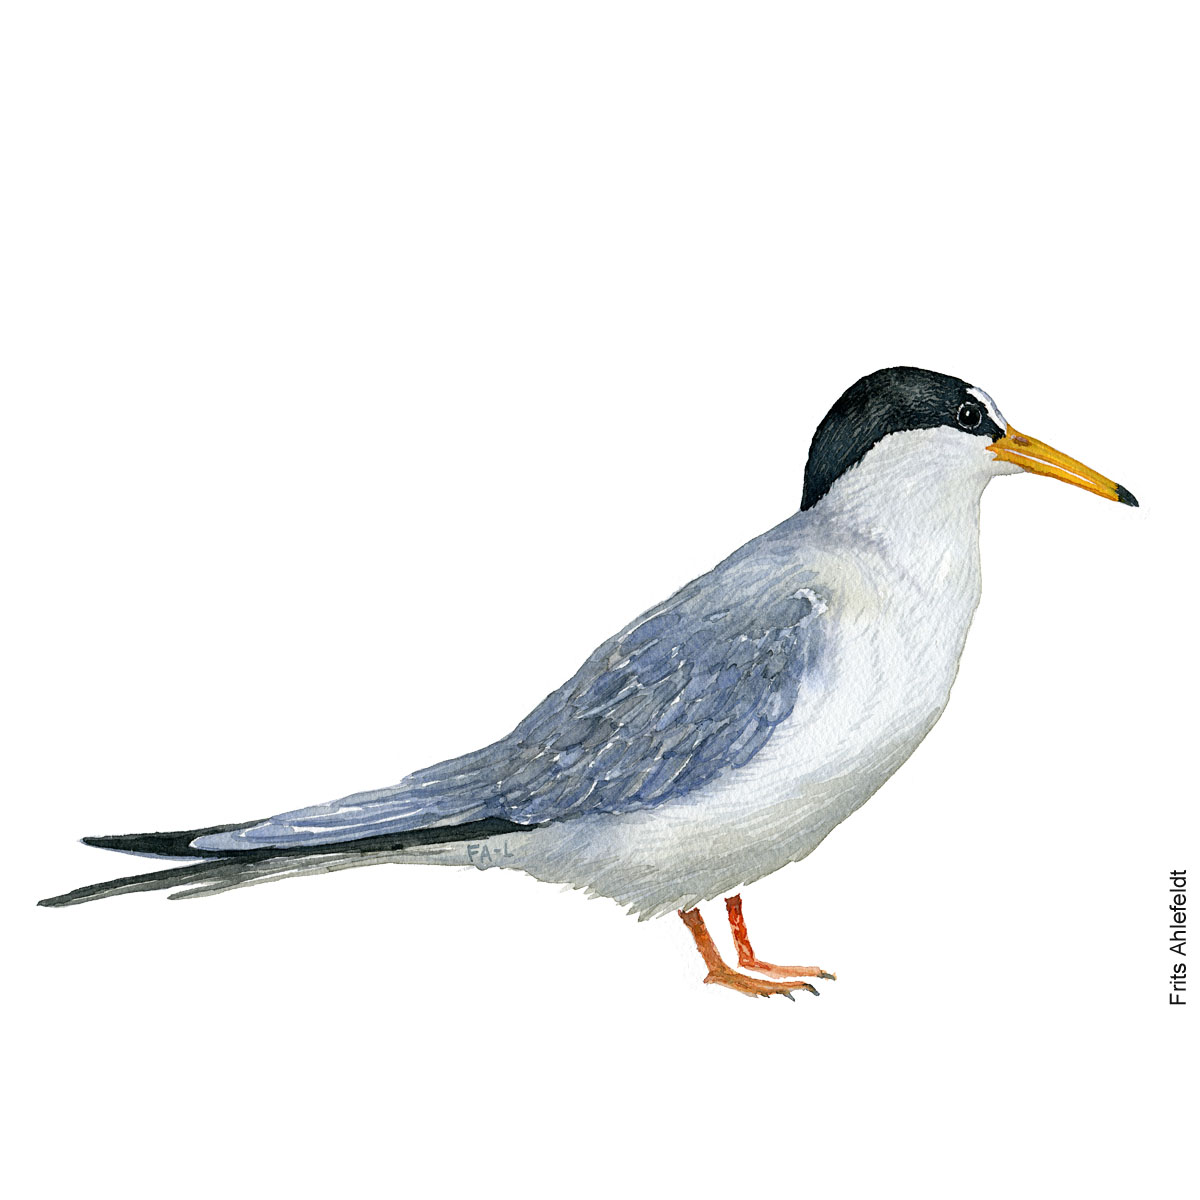 Little tern. Bird watercolor illustration handmade by Frits Ahlefeldt